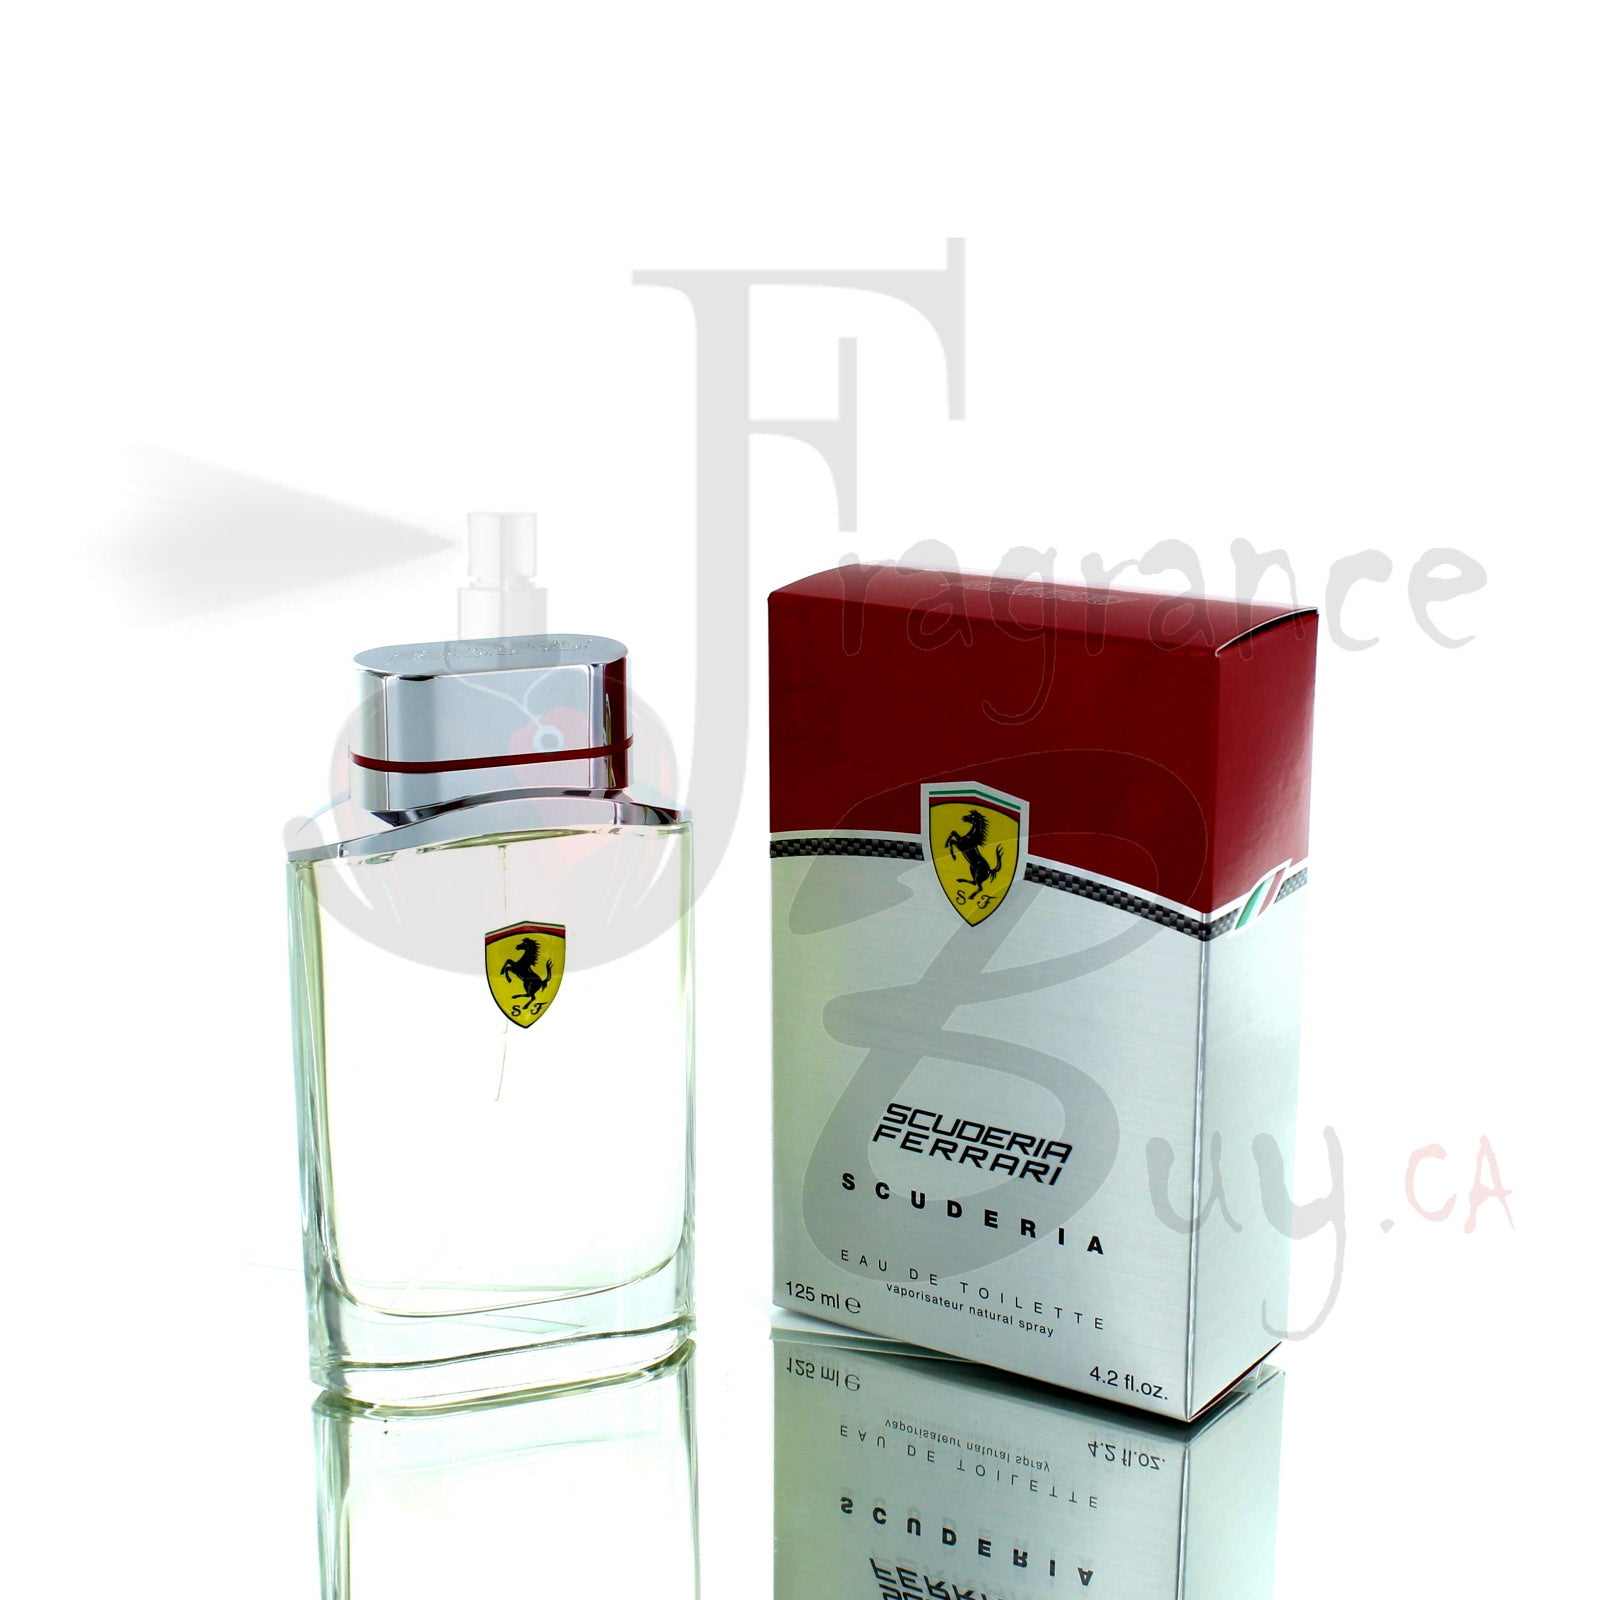 scuderia youtube review perfume case red ferrari fragrance watch